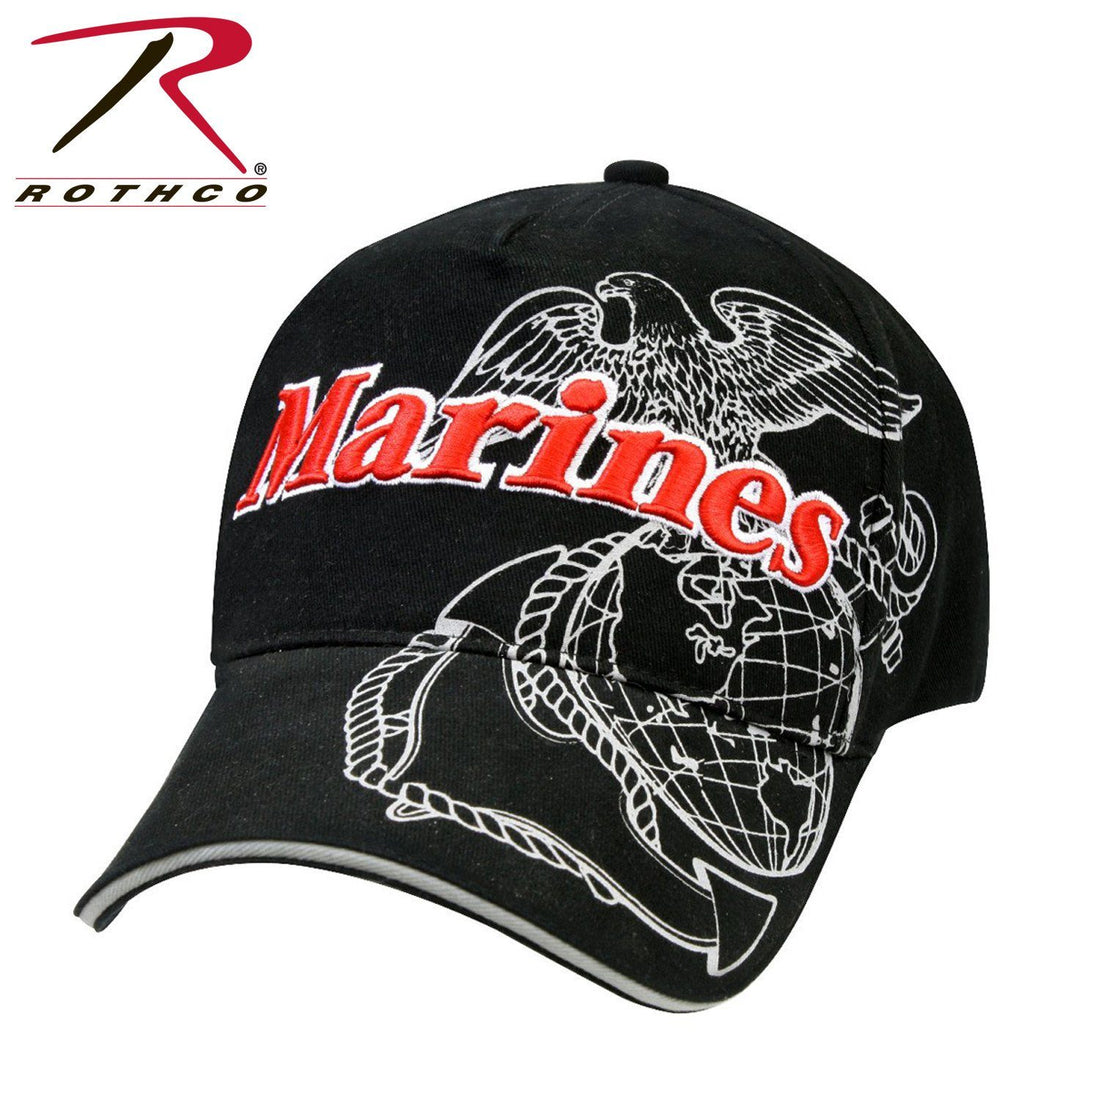 ROTHCO MARINE WITH SHADOW EGA IN BLACK - Marine Corps Direct